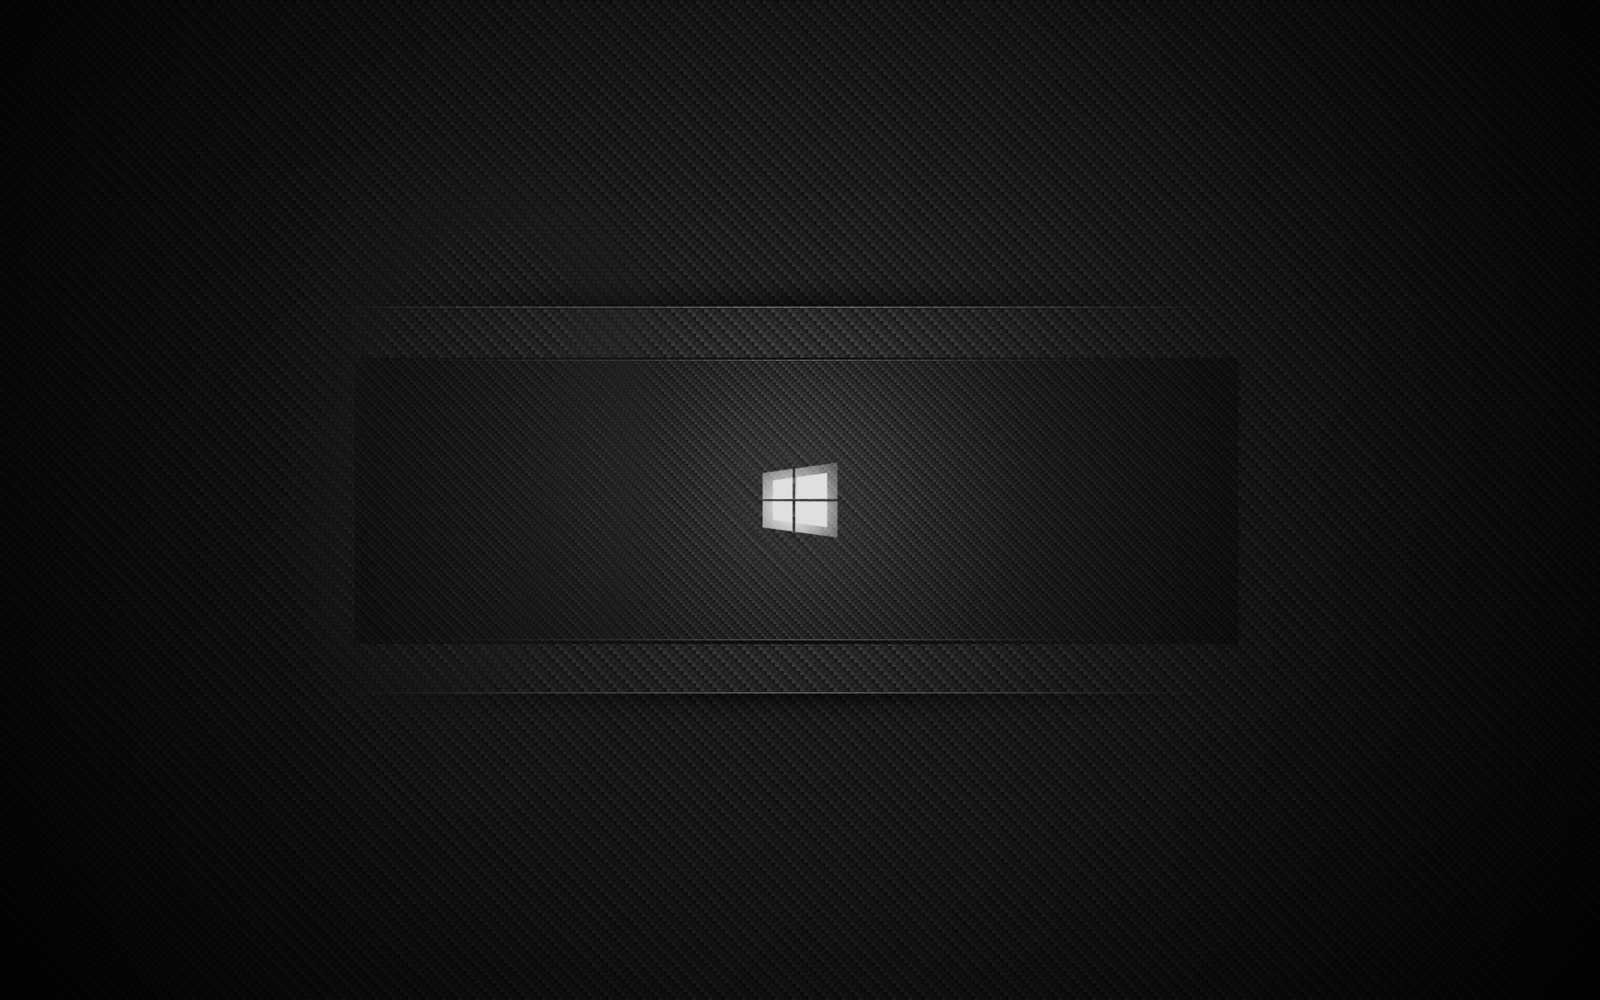 Carbon Fiber Wallpaper Windows 7